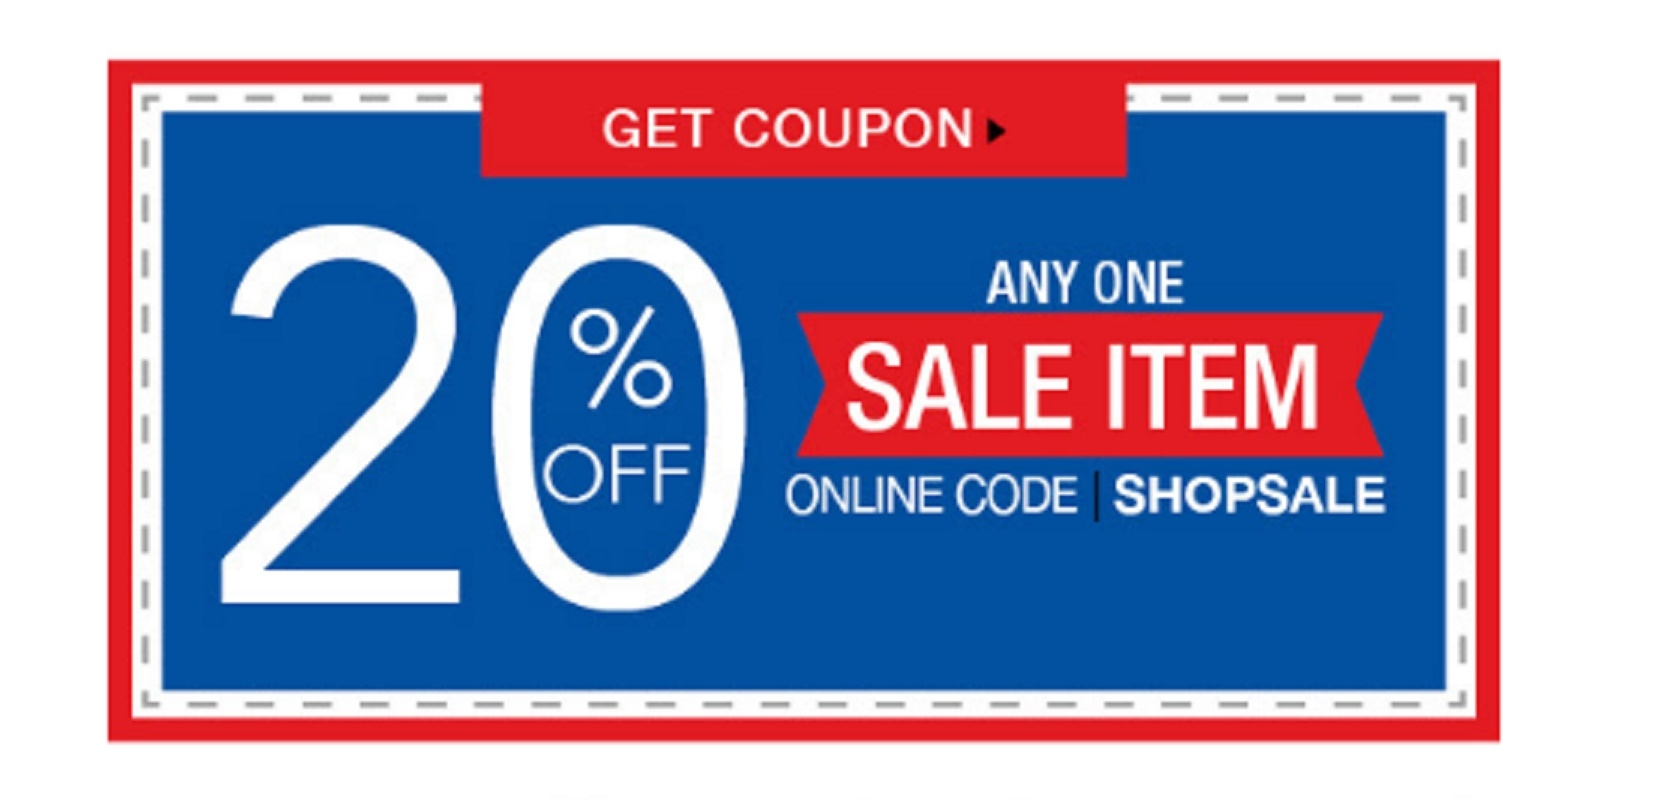 B and h coupon code 20 off